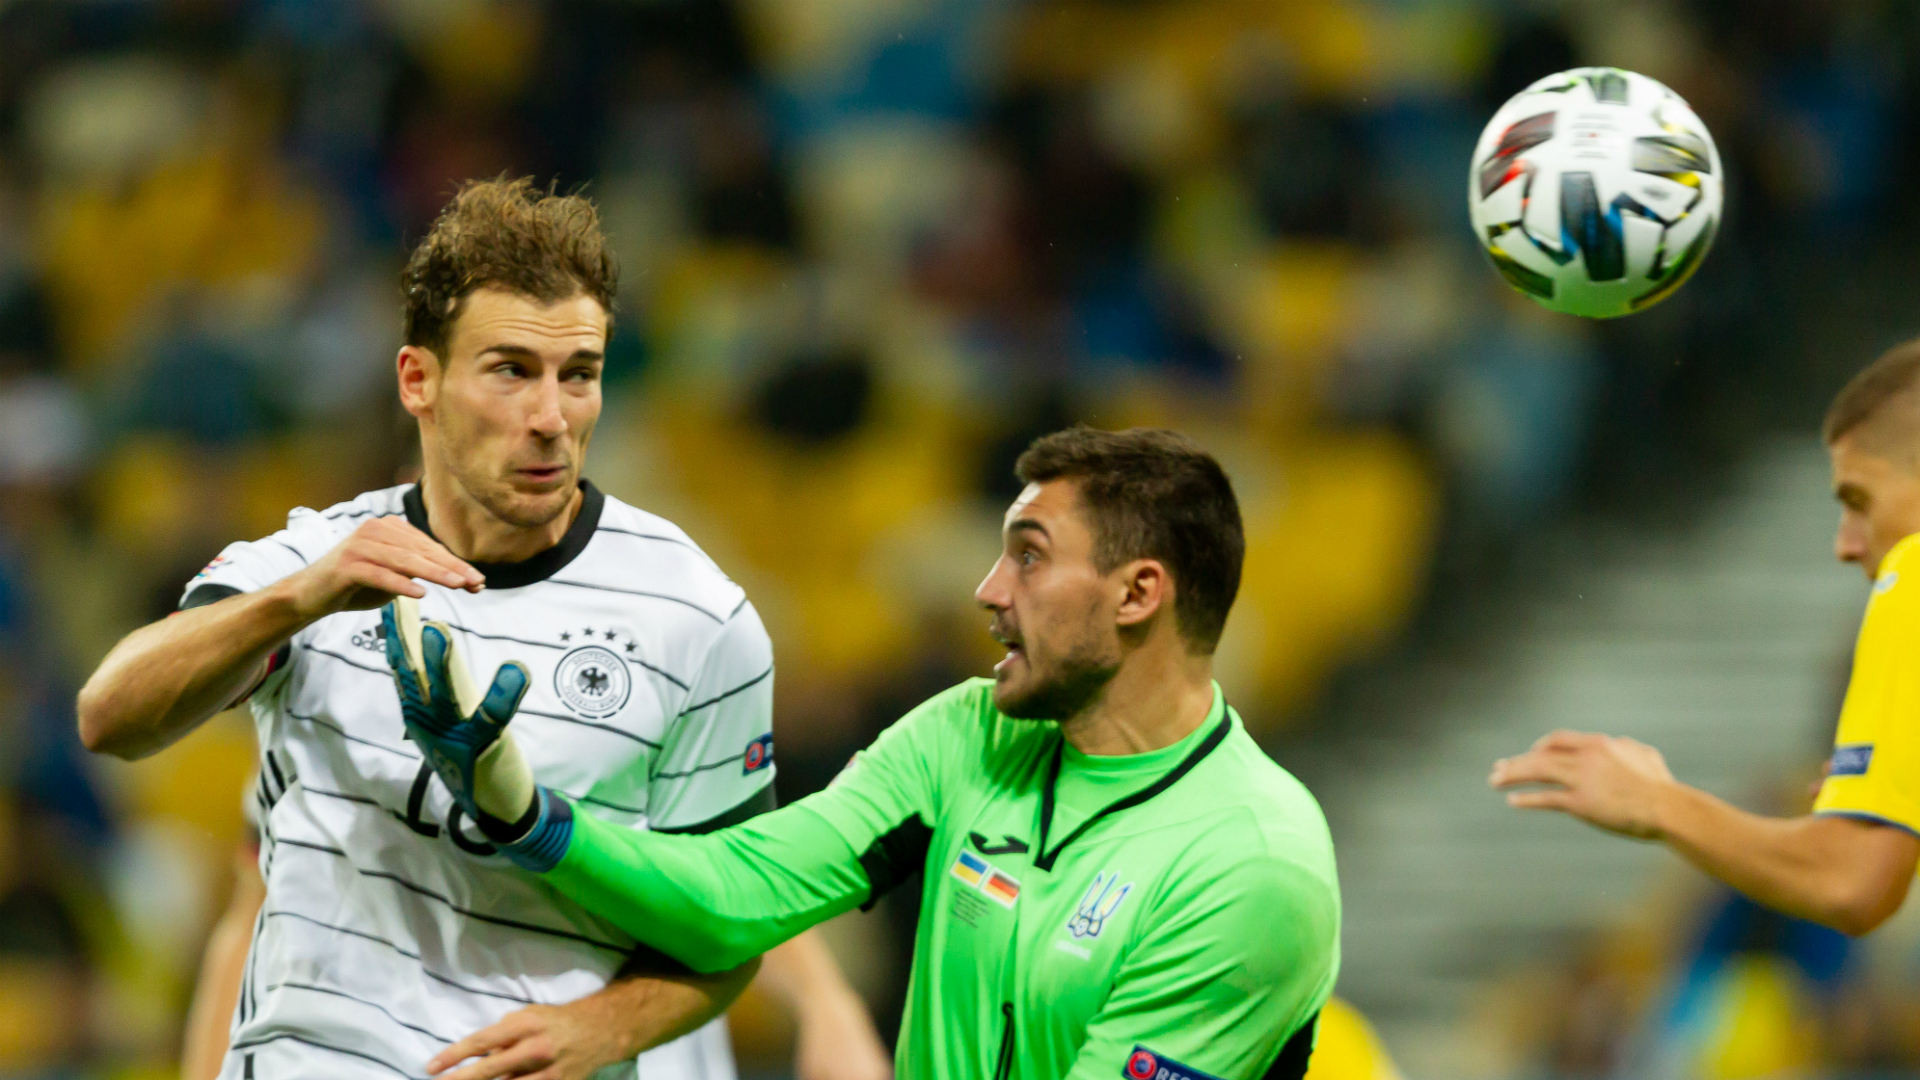 Ukraine 1-2 Germany: Bushchan blunder as visitors finally land a Nations League win